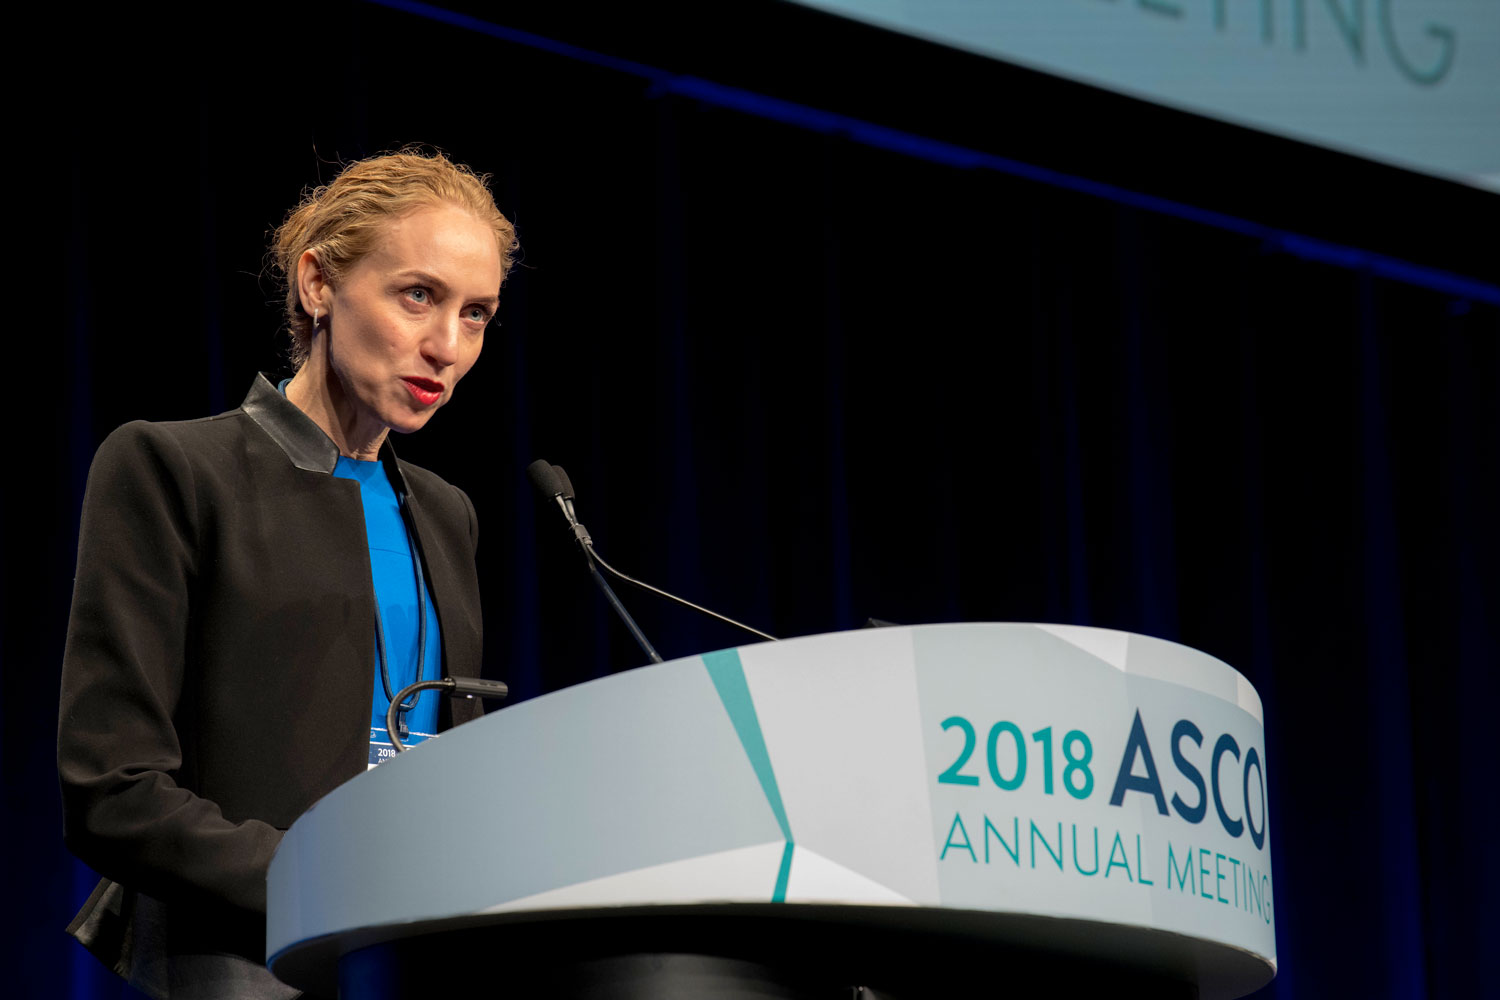 Georgina Long speaking at ASCO18